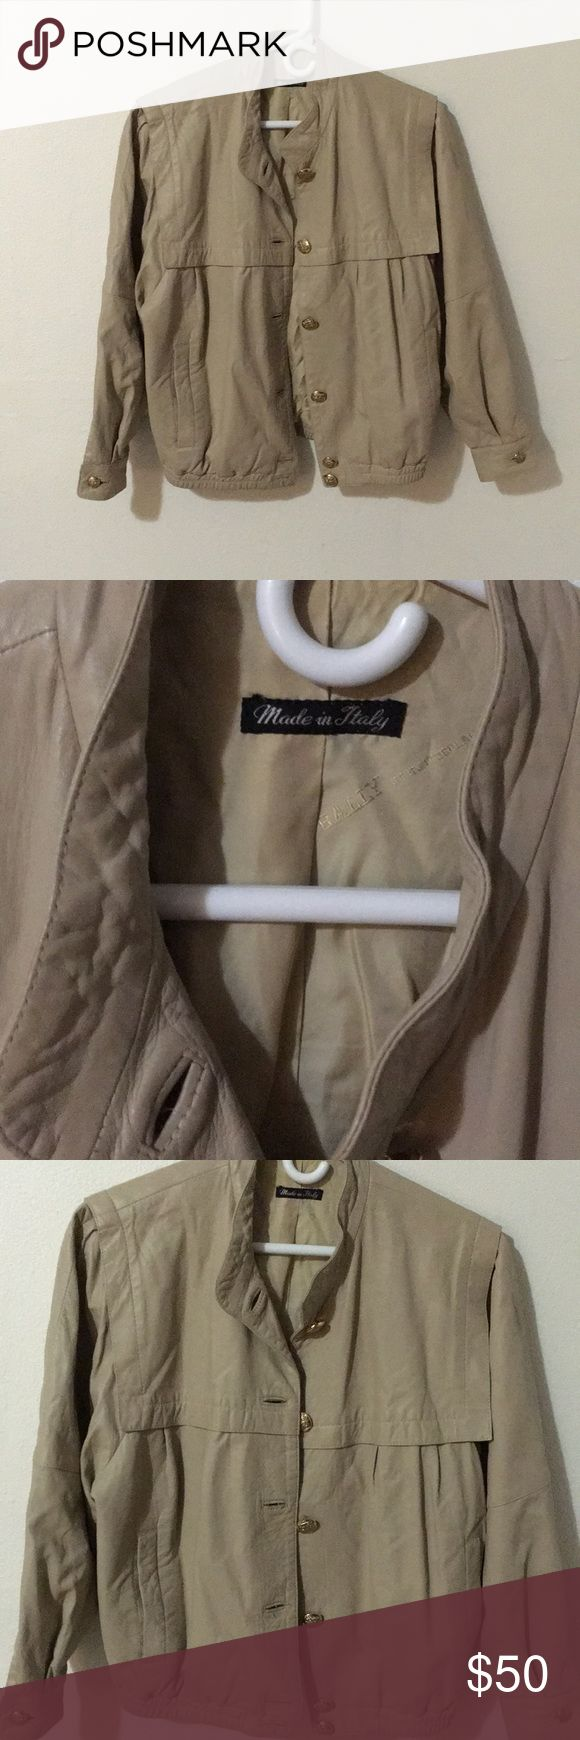 Vintage Italian Leather Jacket 🧥 The leather on this is amazing! Movable and soft to the touch. It's kind of a tan-taupe-cream color. Jackets & Coats